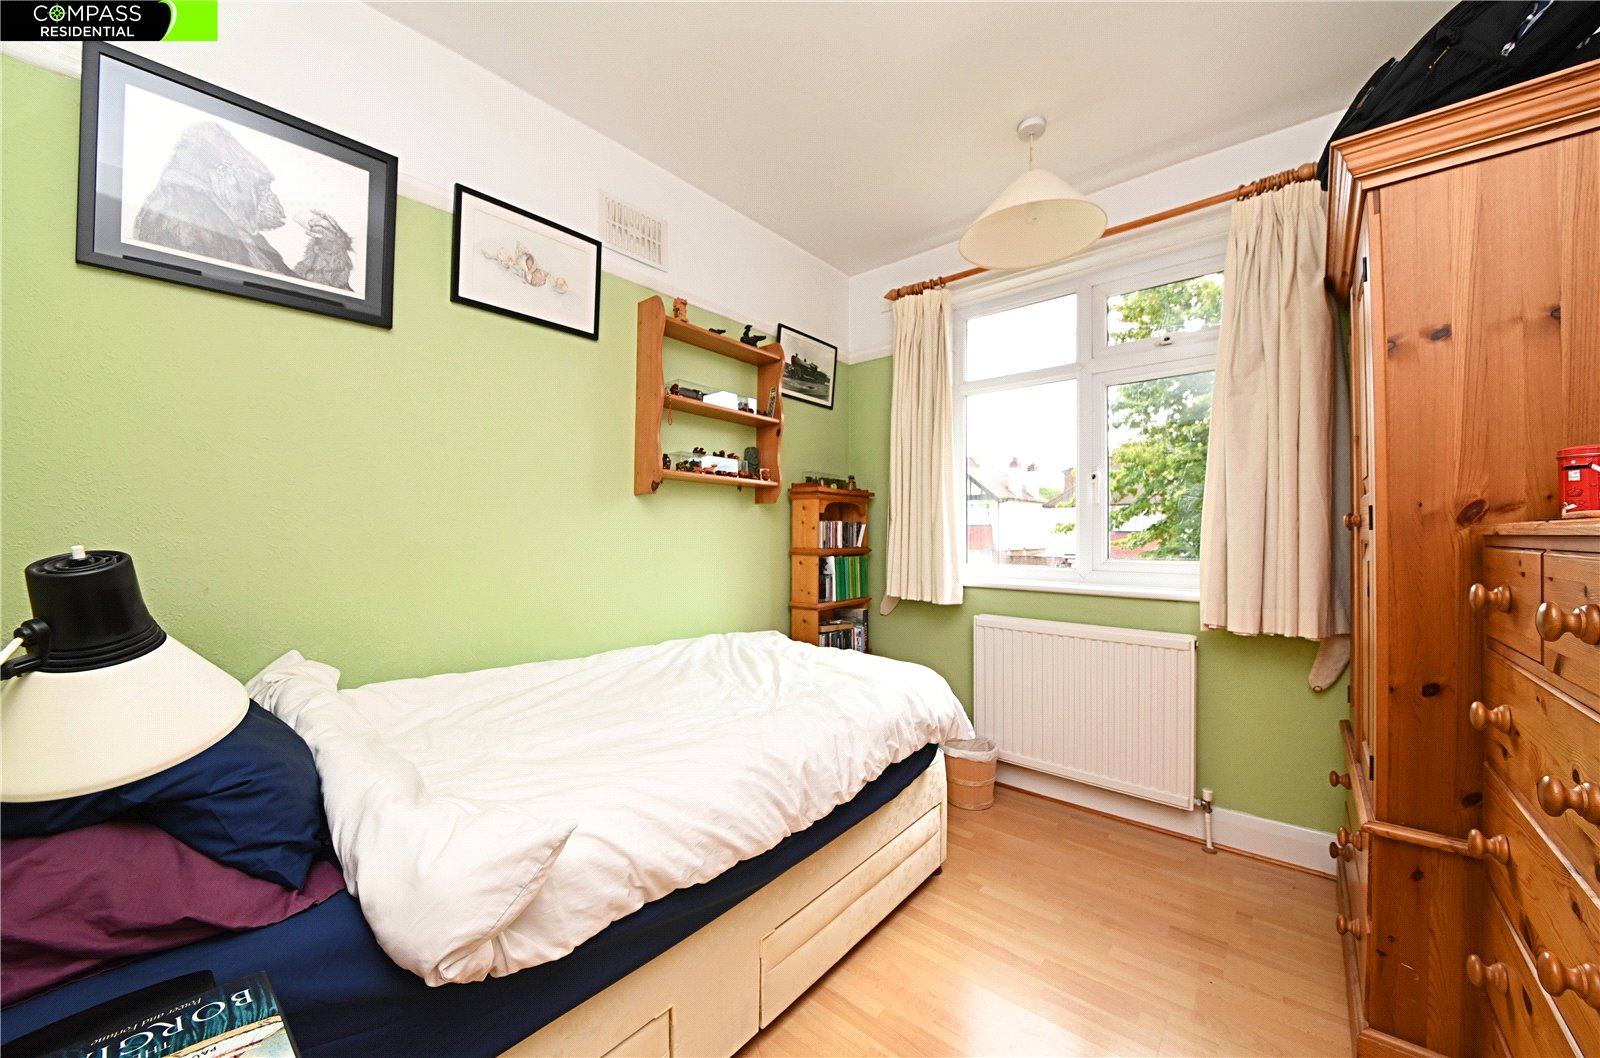 3 bed house for sale in Totteridge, N20 8HL  - Property Image 9